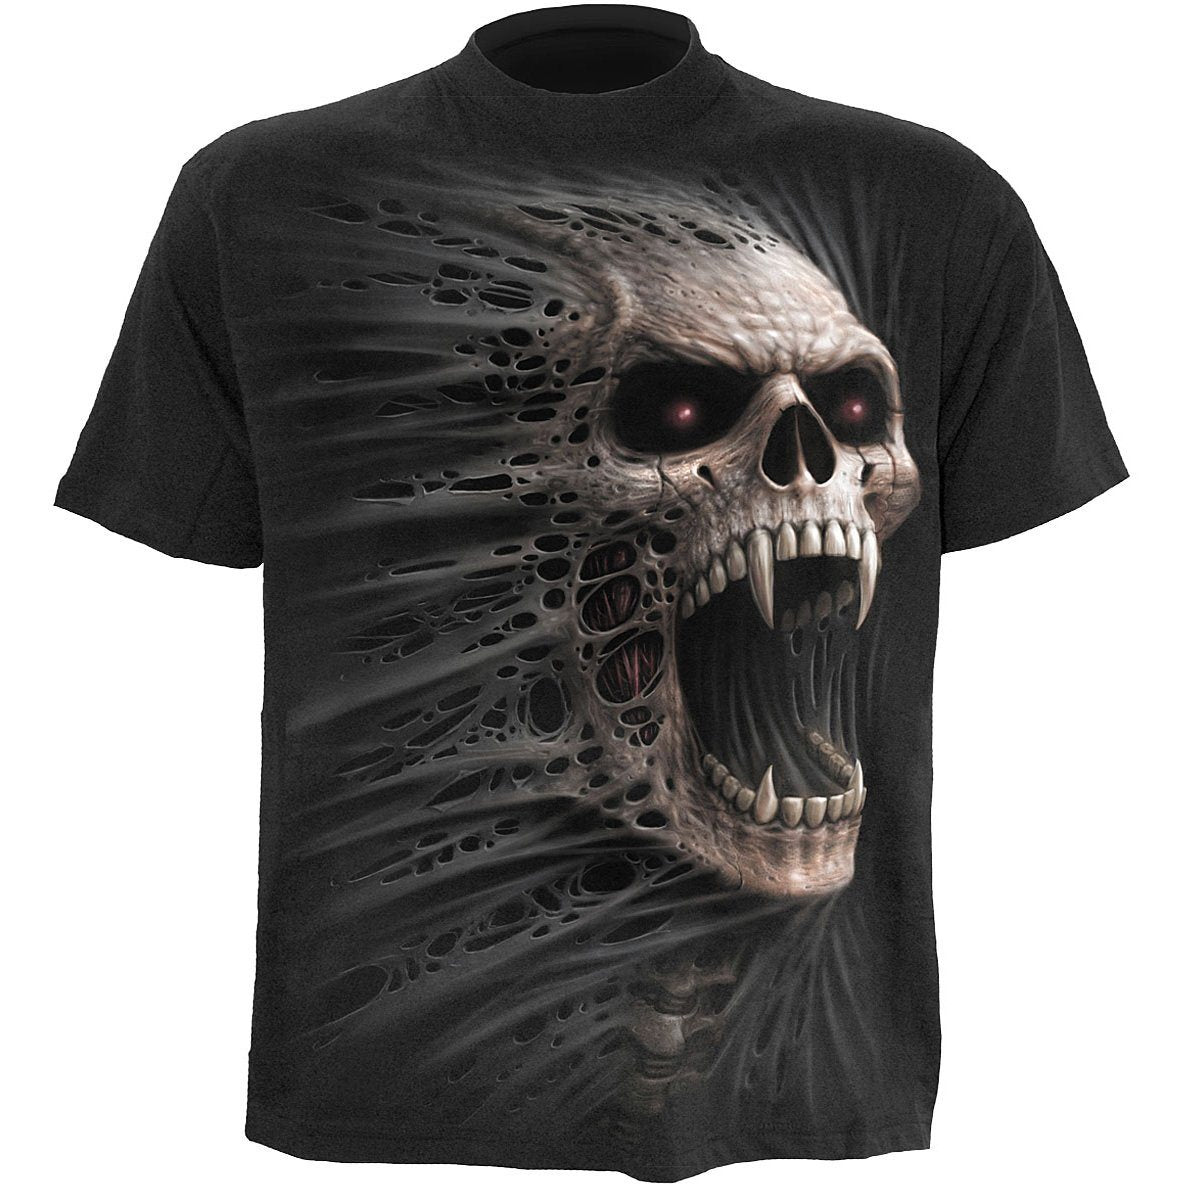 Morphing 3D Skull Men's Black T-Shirt